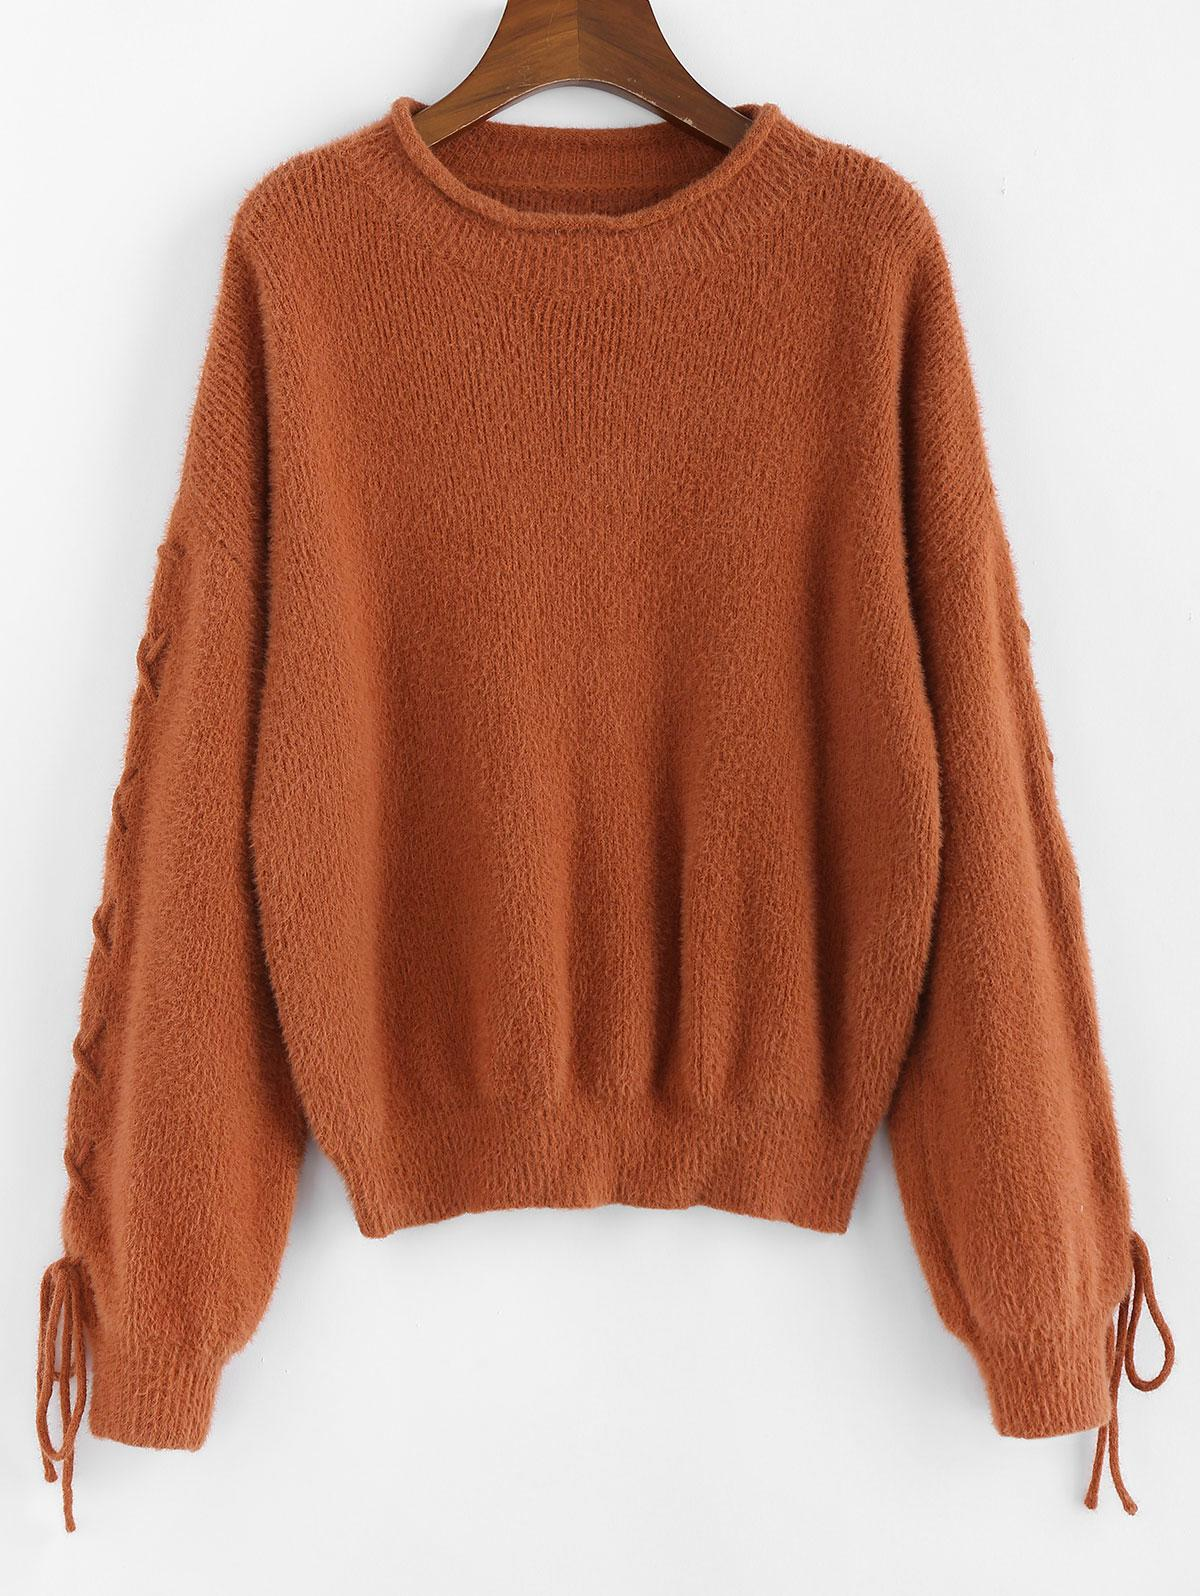 ZAFUL Lace Up Drop Shoulder Furry Sweater